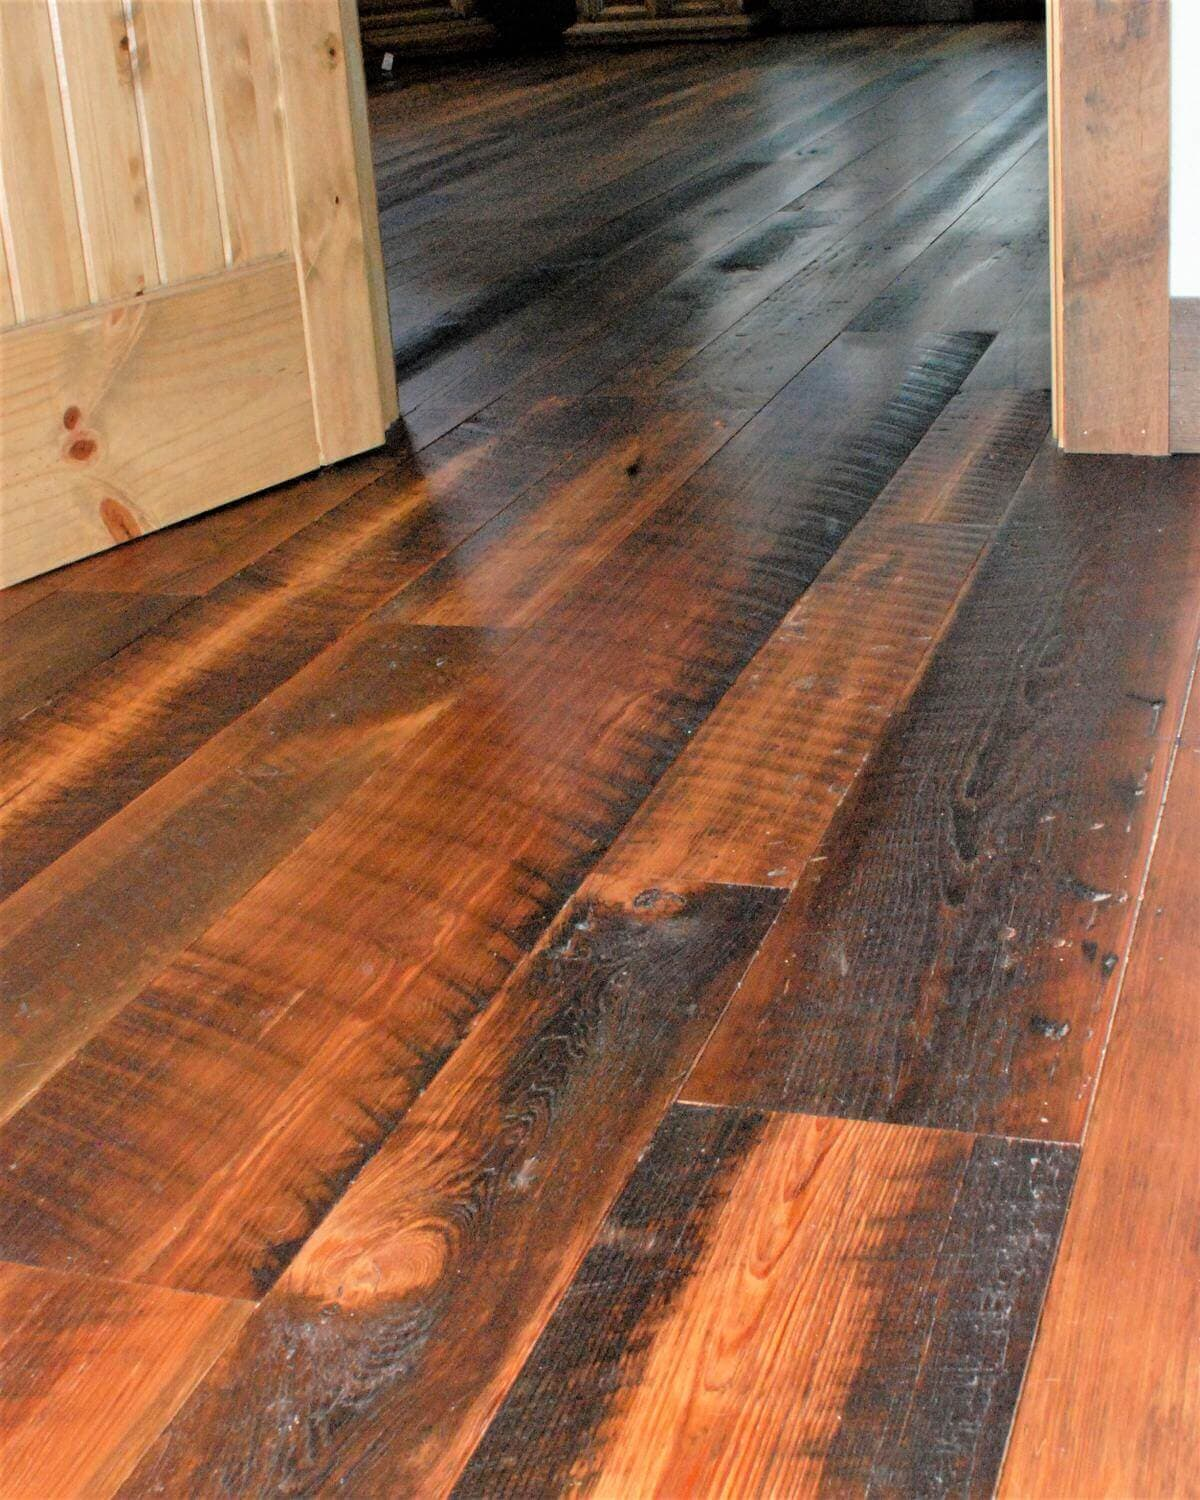 Heart pine character flooring in a hallway